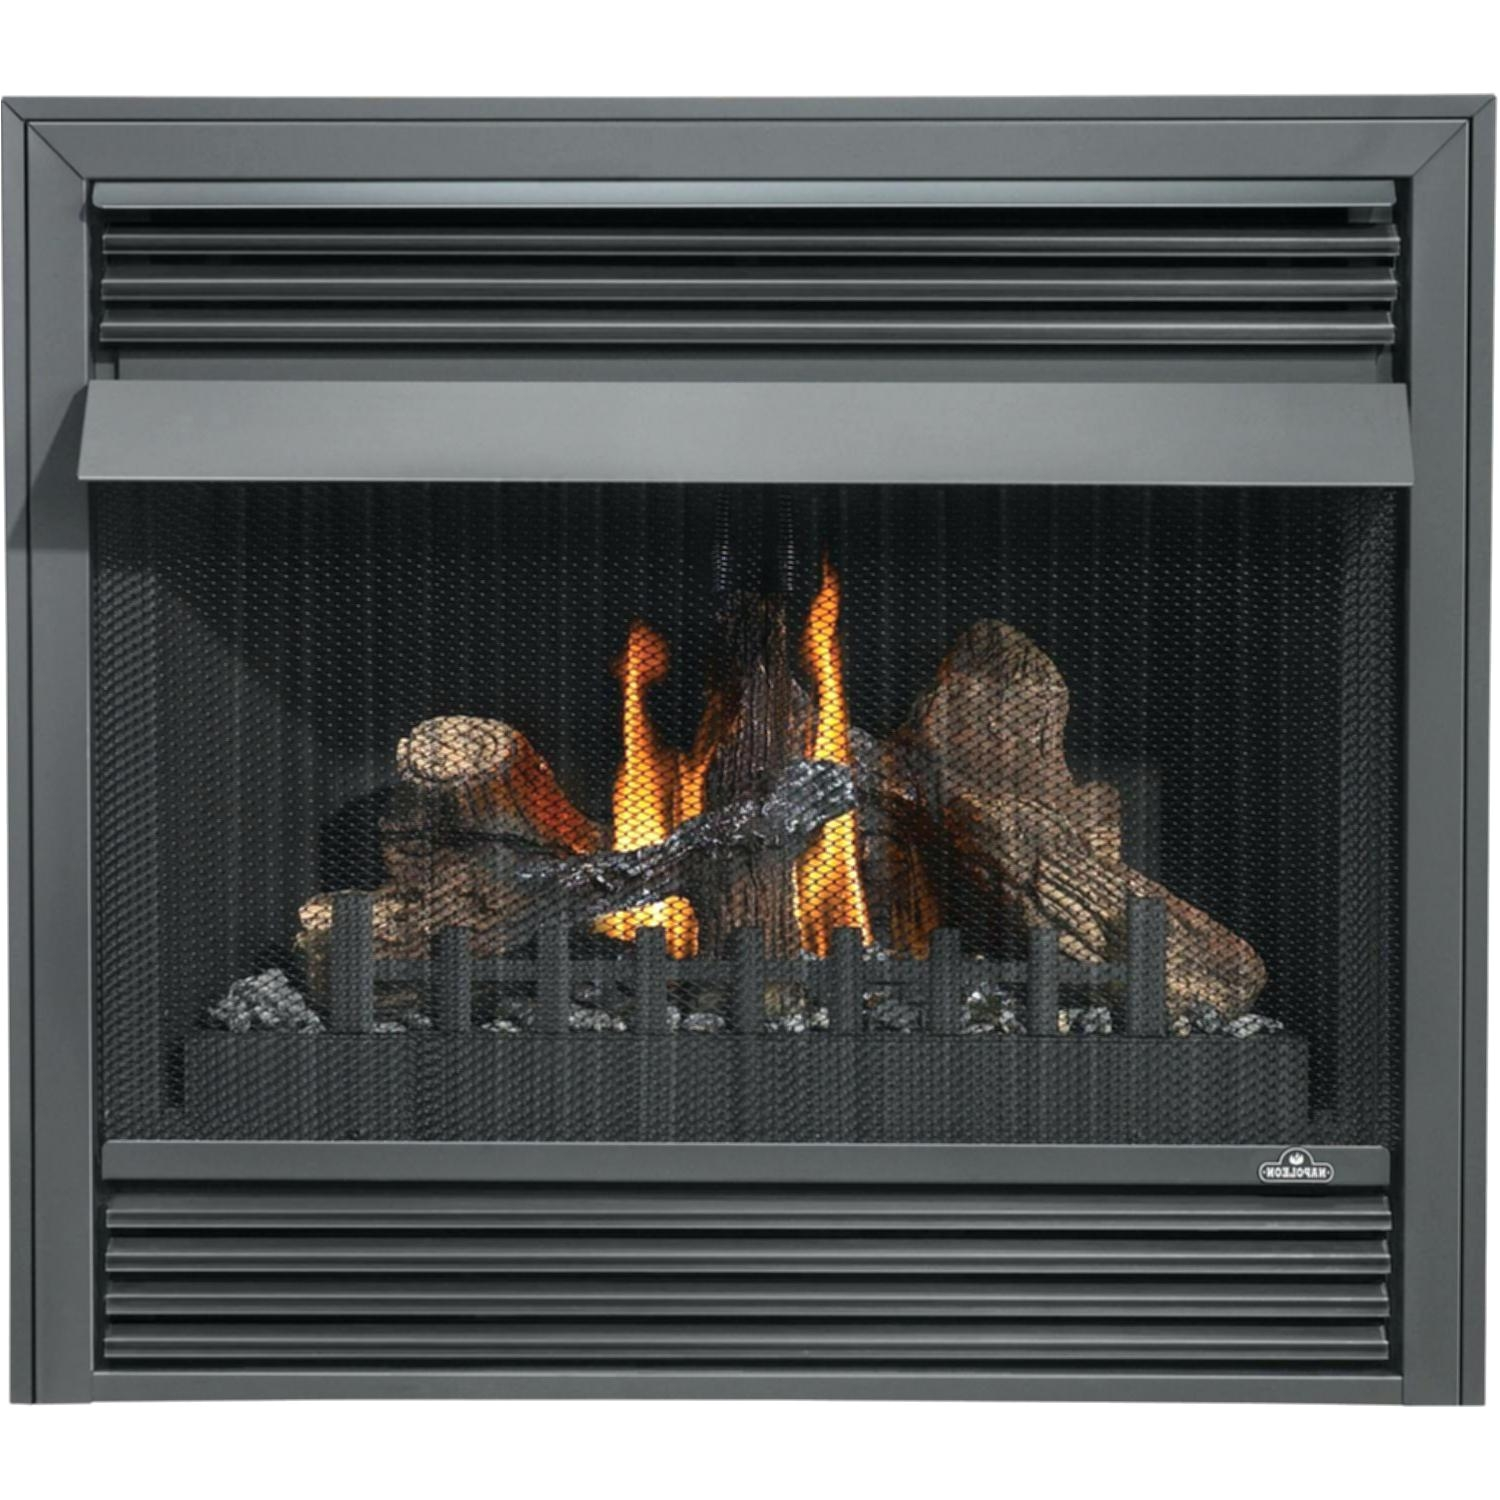 lennox gas fireplace parts canada gas fireplace parts simple lennox gas fireplace parts with lennox of lennox gas fireplace parts canada